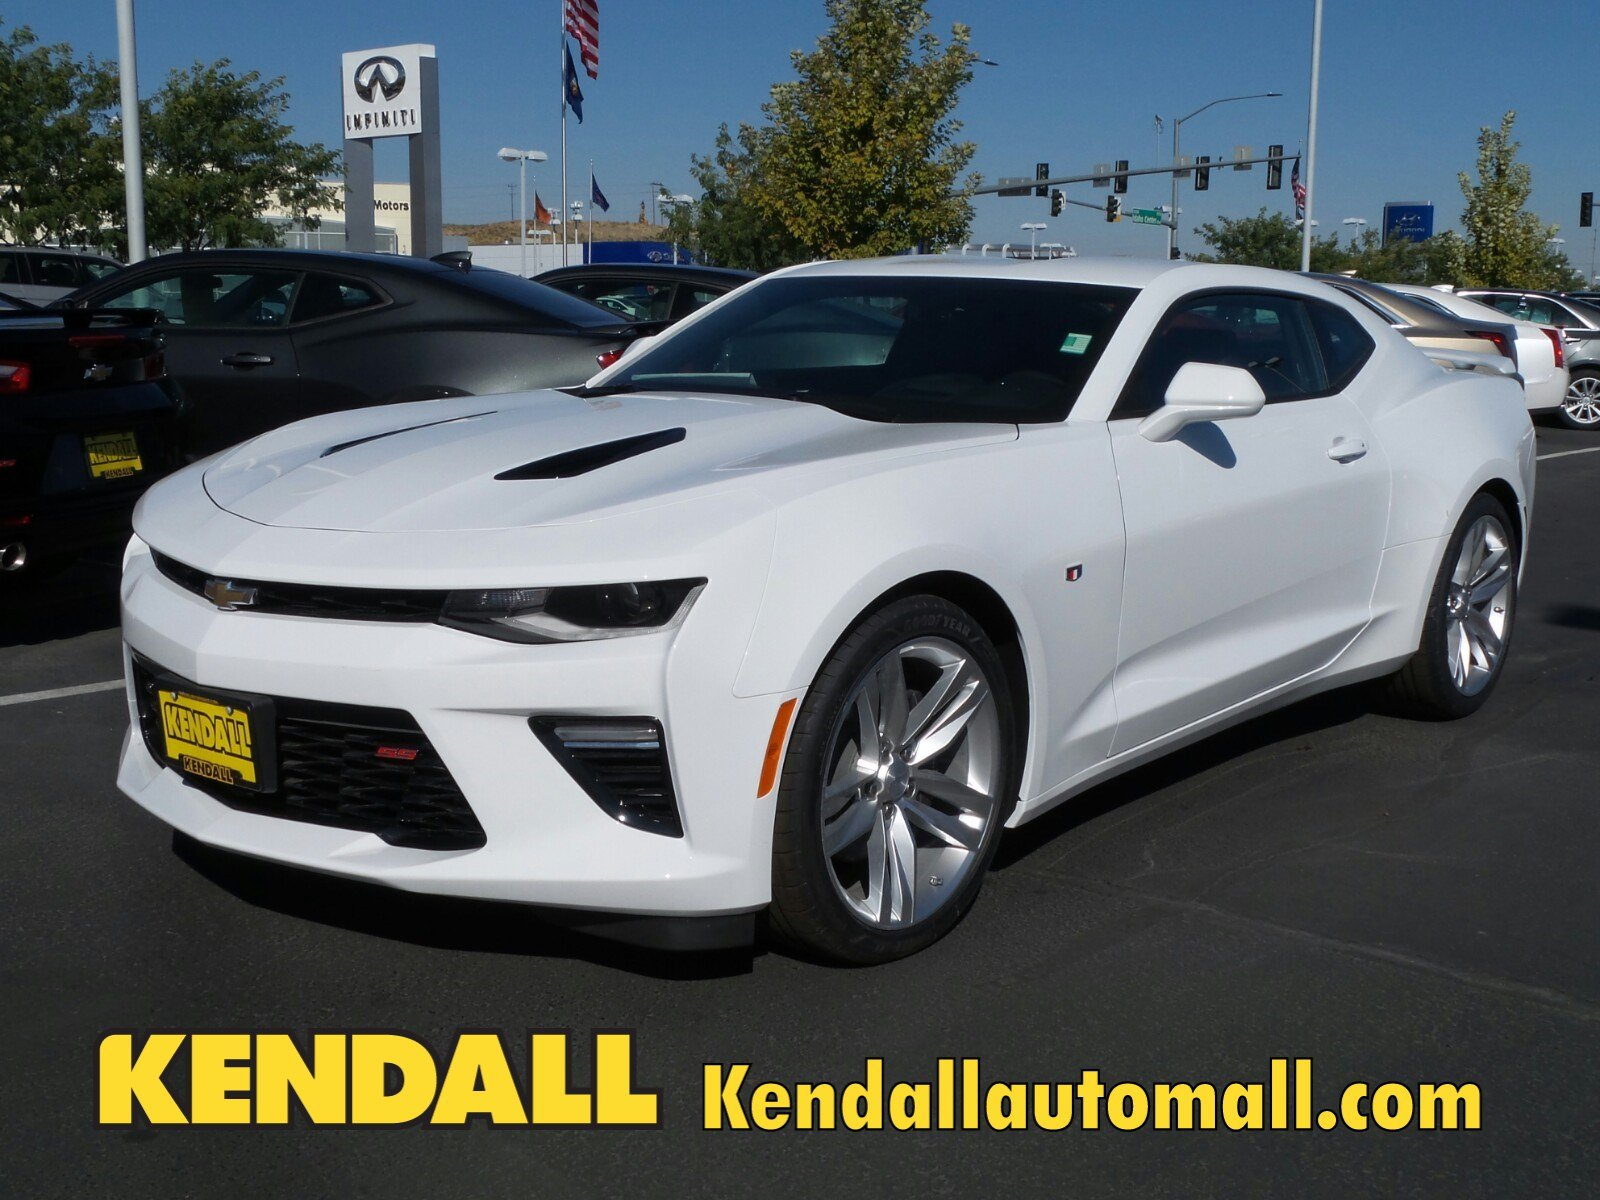 New 2018 Chevrolet Camaro Ss In Nampa D180026 Kendall At The Idaho Center Auto Mall